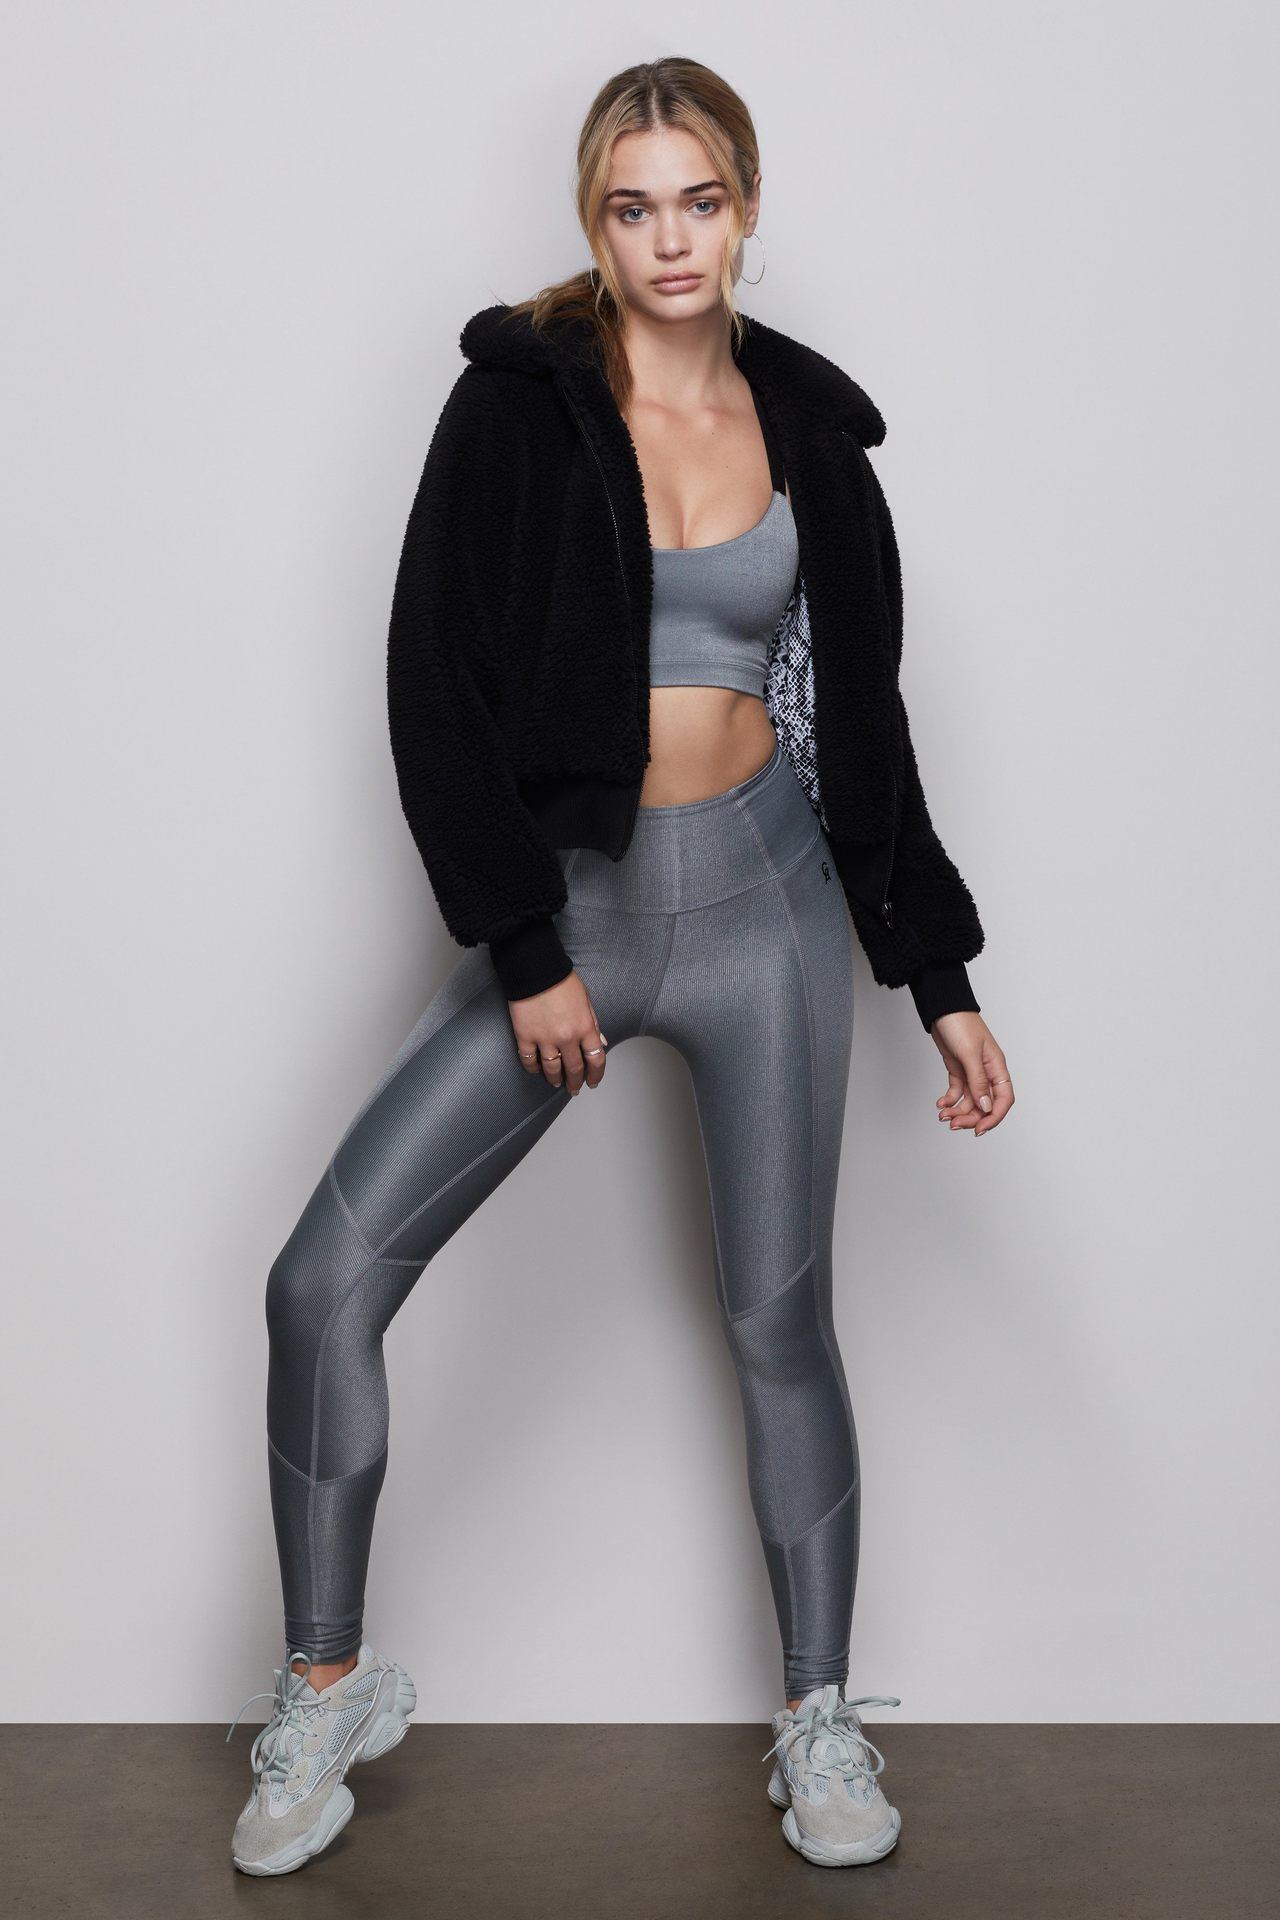 THE SHINY RIB LEGGING | SMOKED PEARL001 by Good American, available on goodamerican.com for $85 Kendall Jenner Pants Exact Product